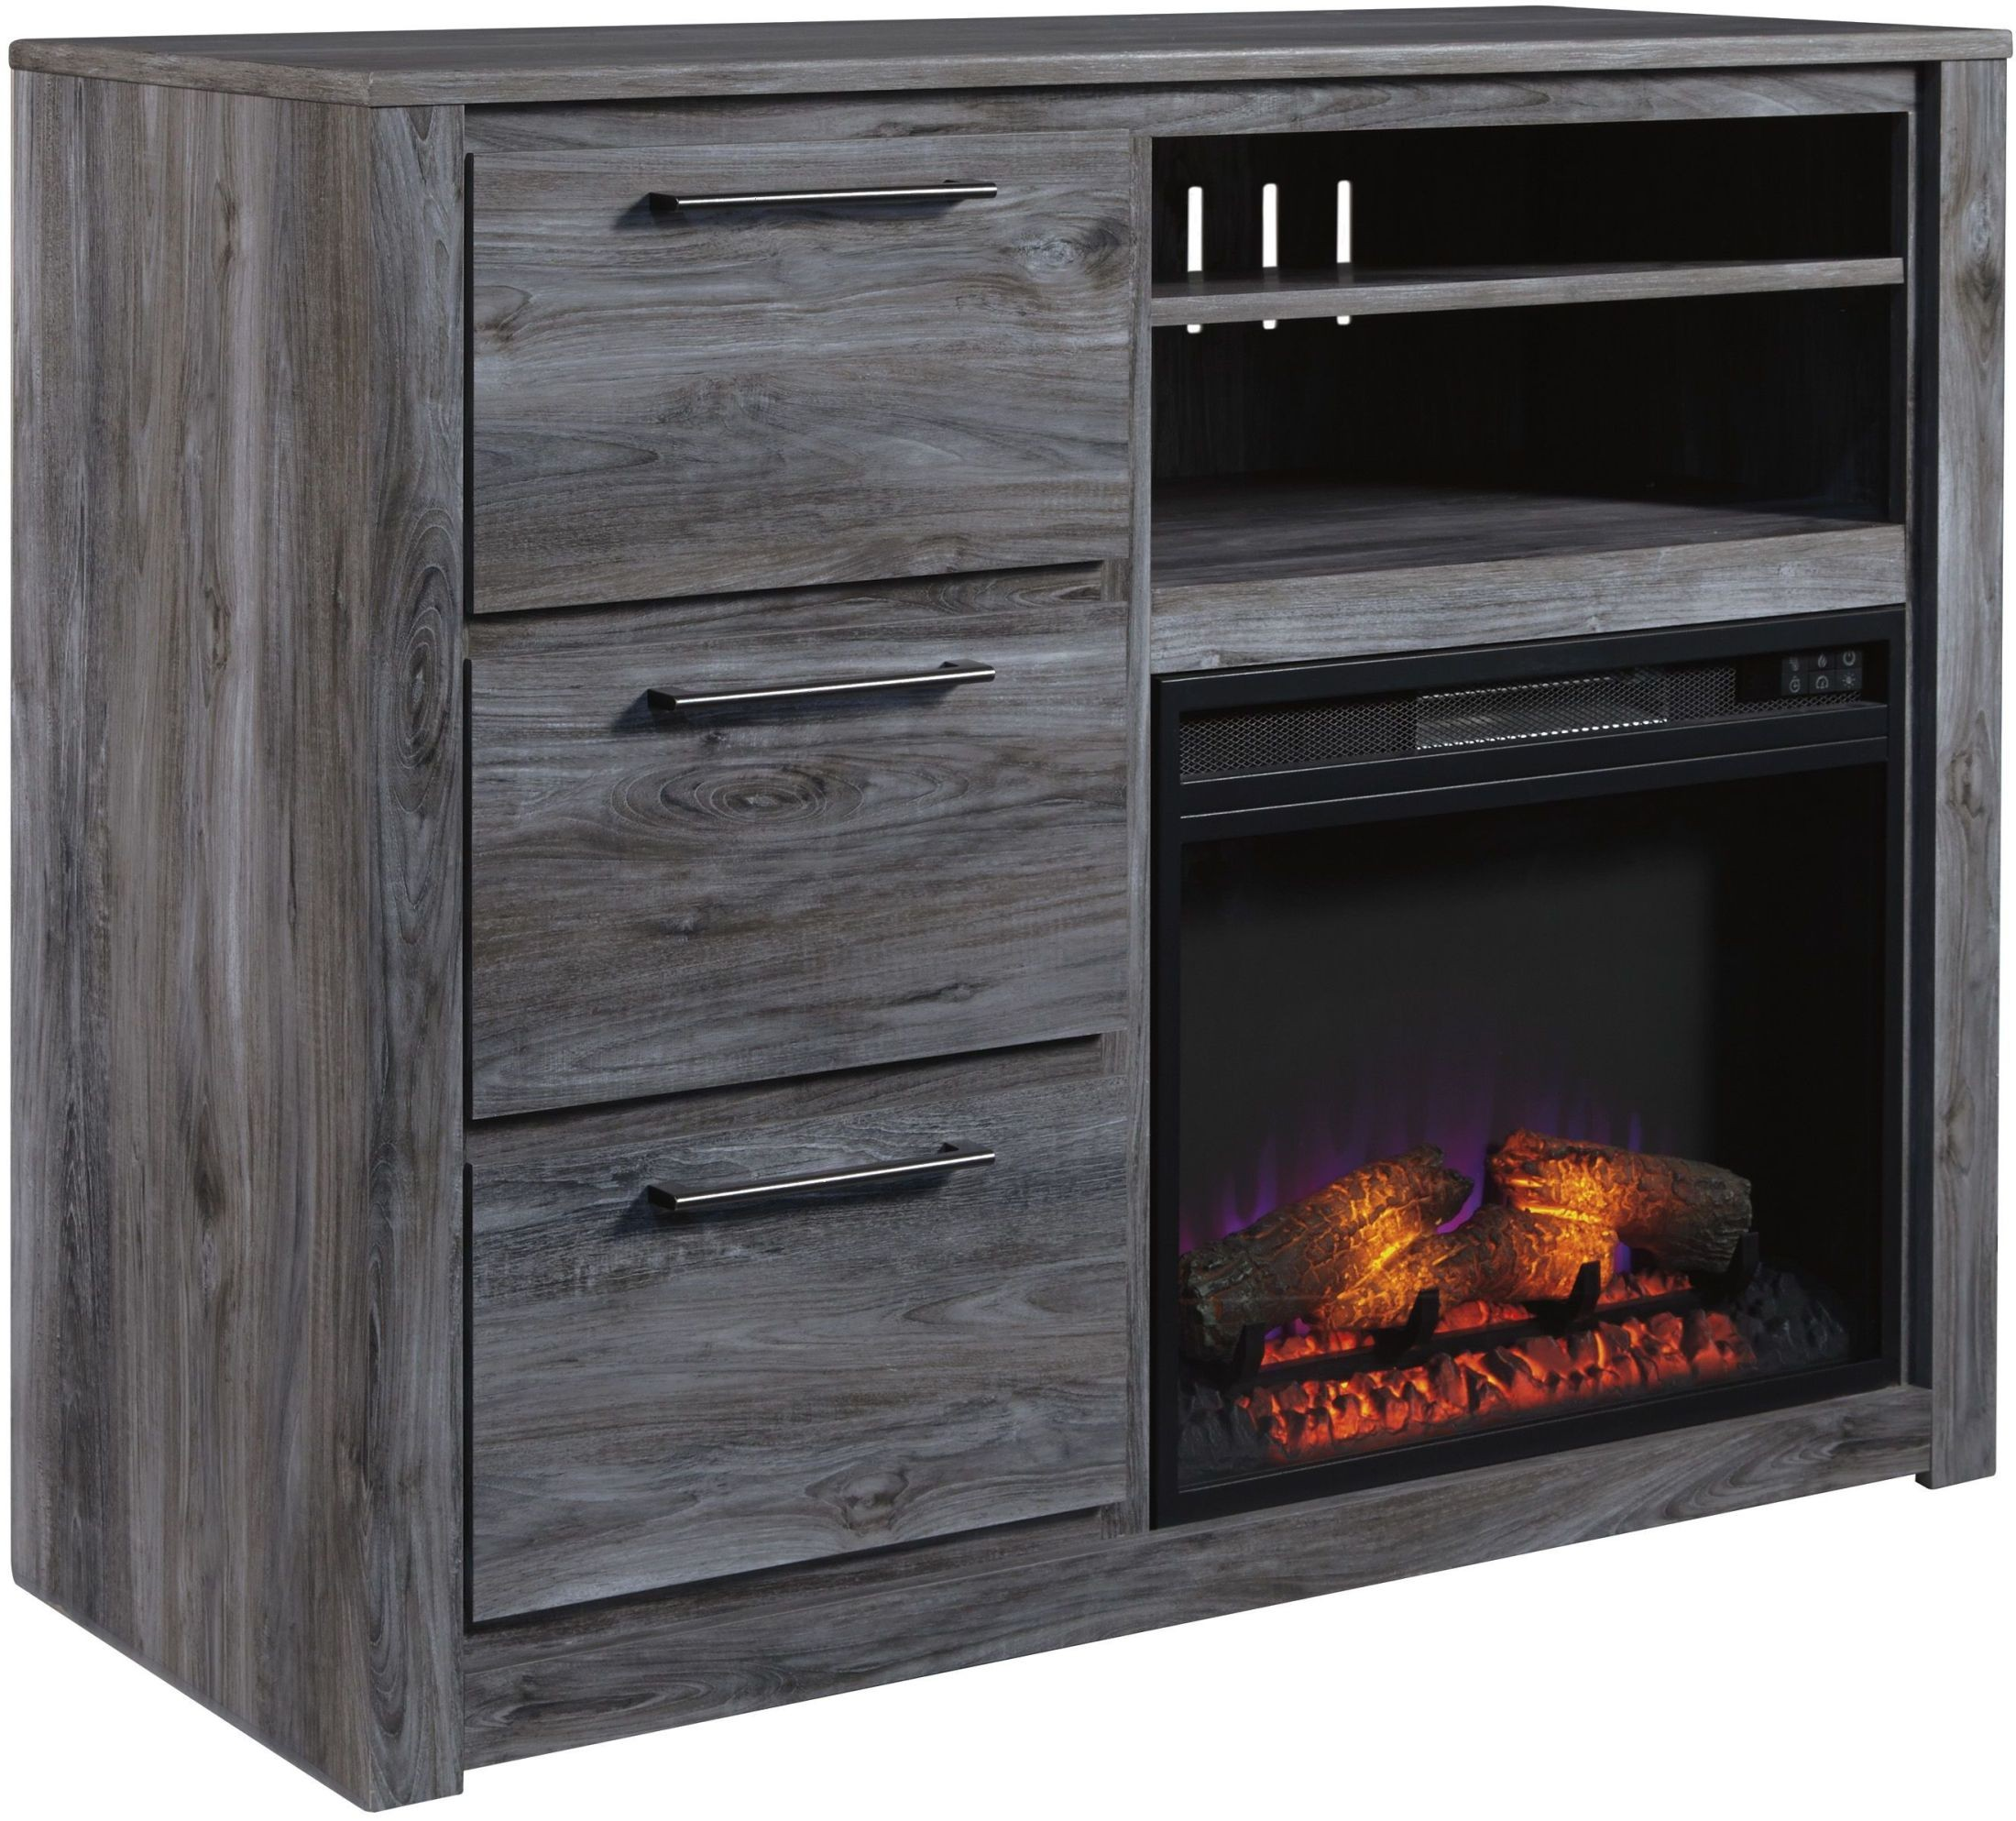 southern fireplace reviews best narita in glazed helpful pine customer console with fireplaces amazon electric pcr enterprises insert media sei rated